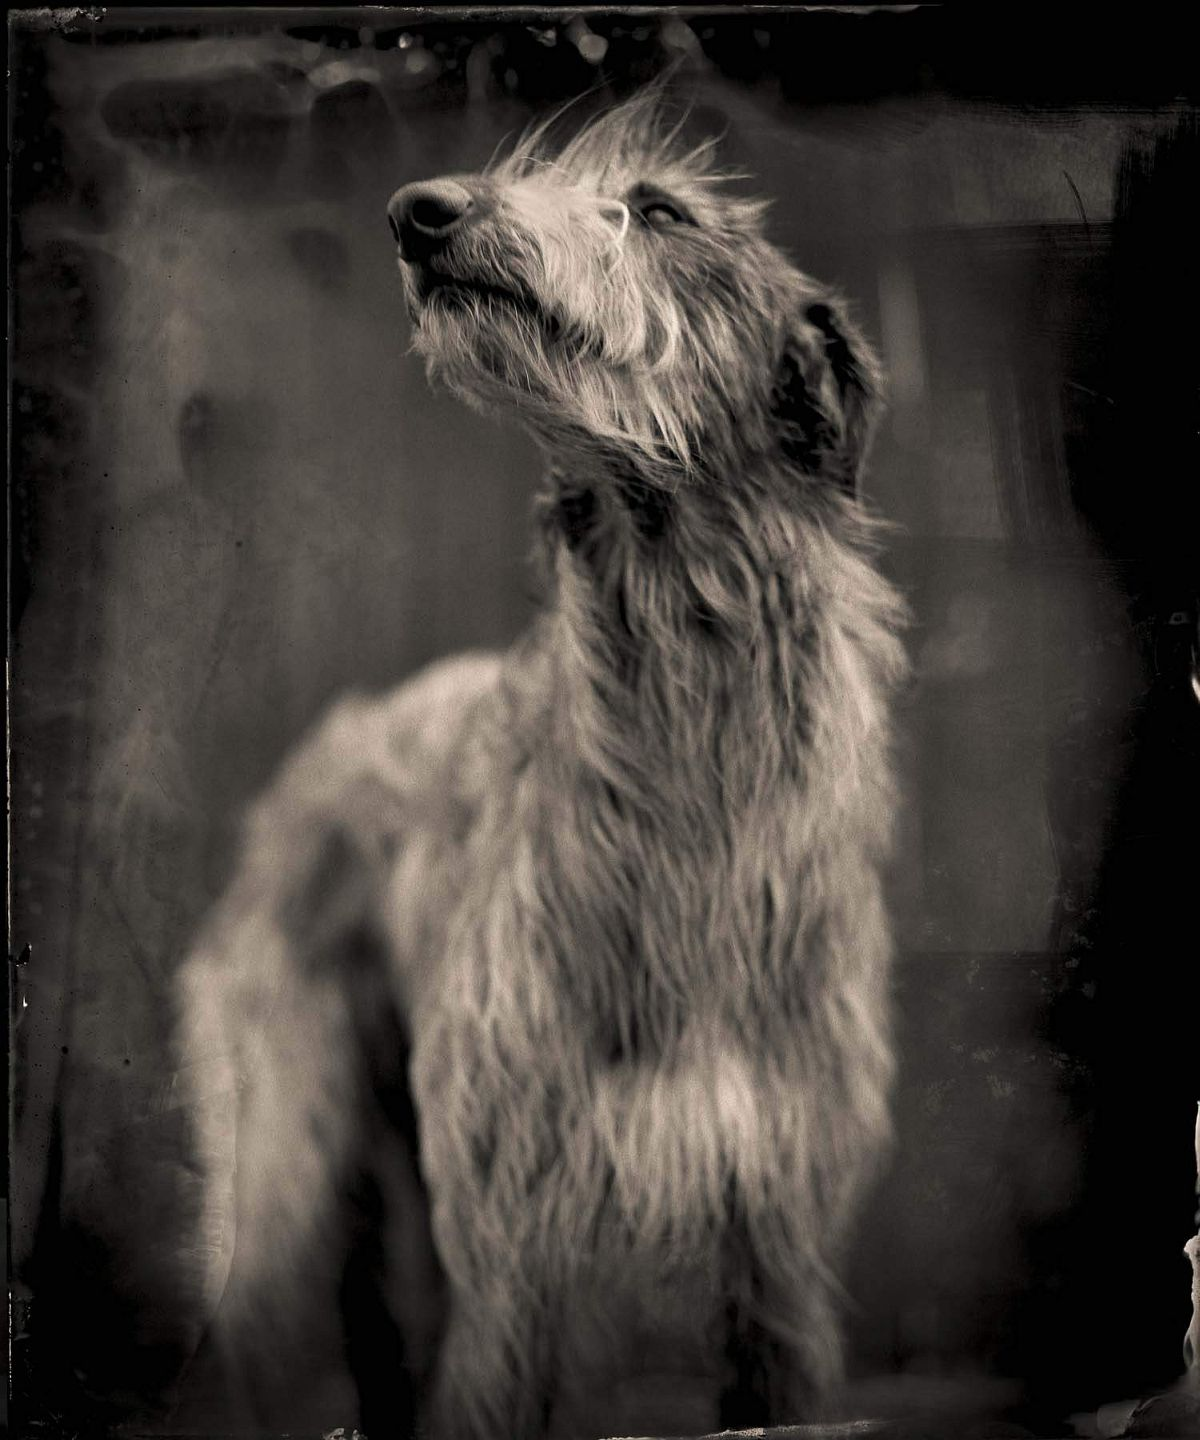 Bog Dog by Keith Carter, 2014